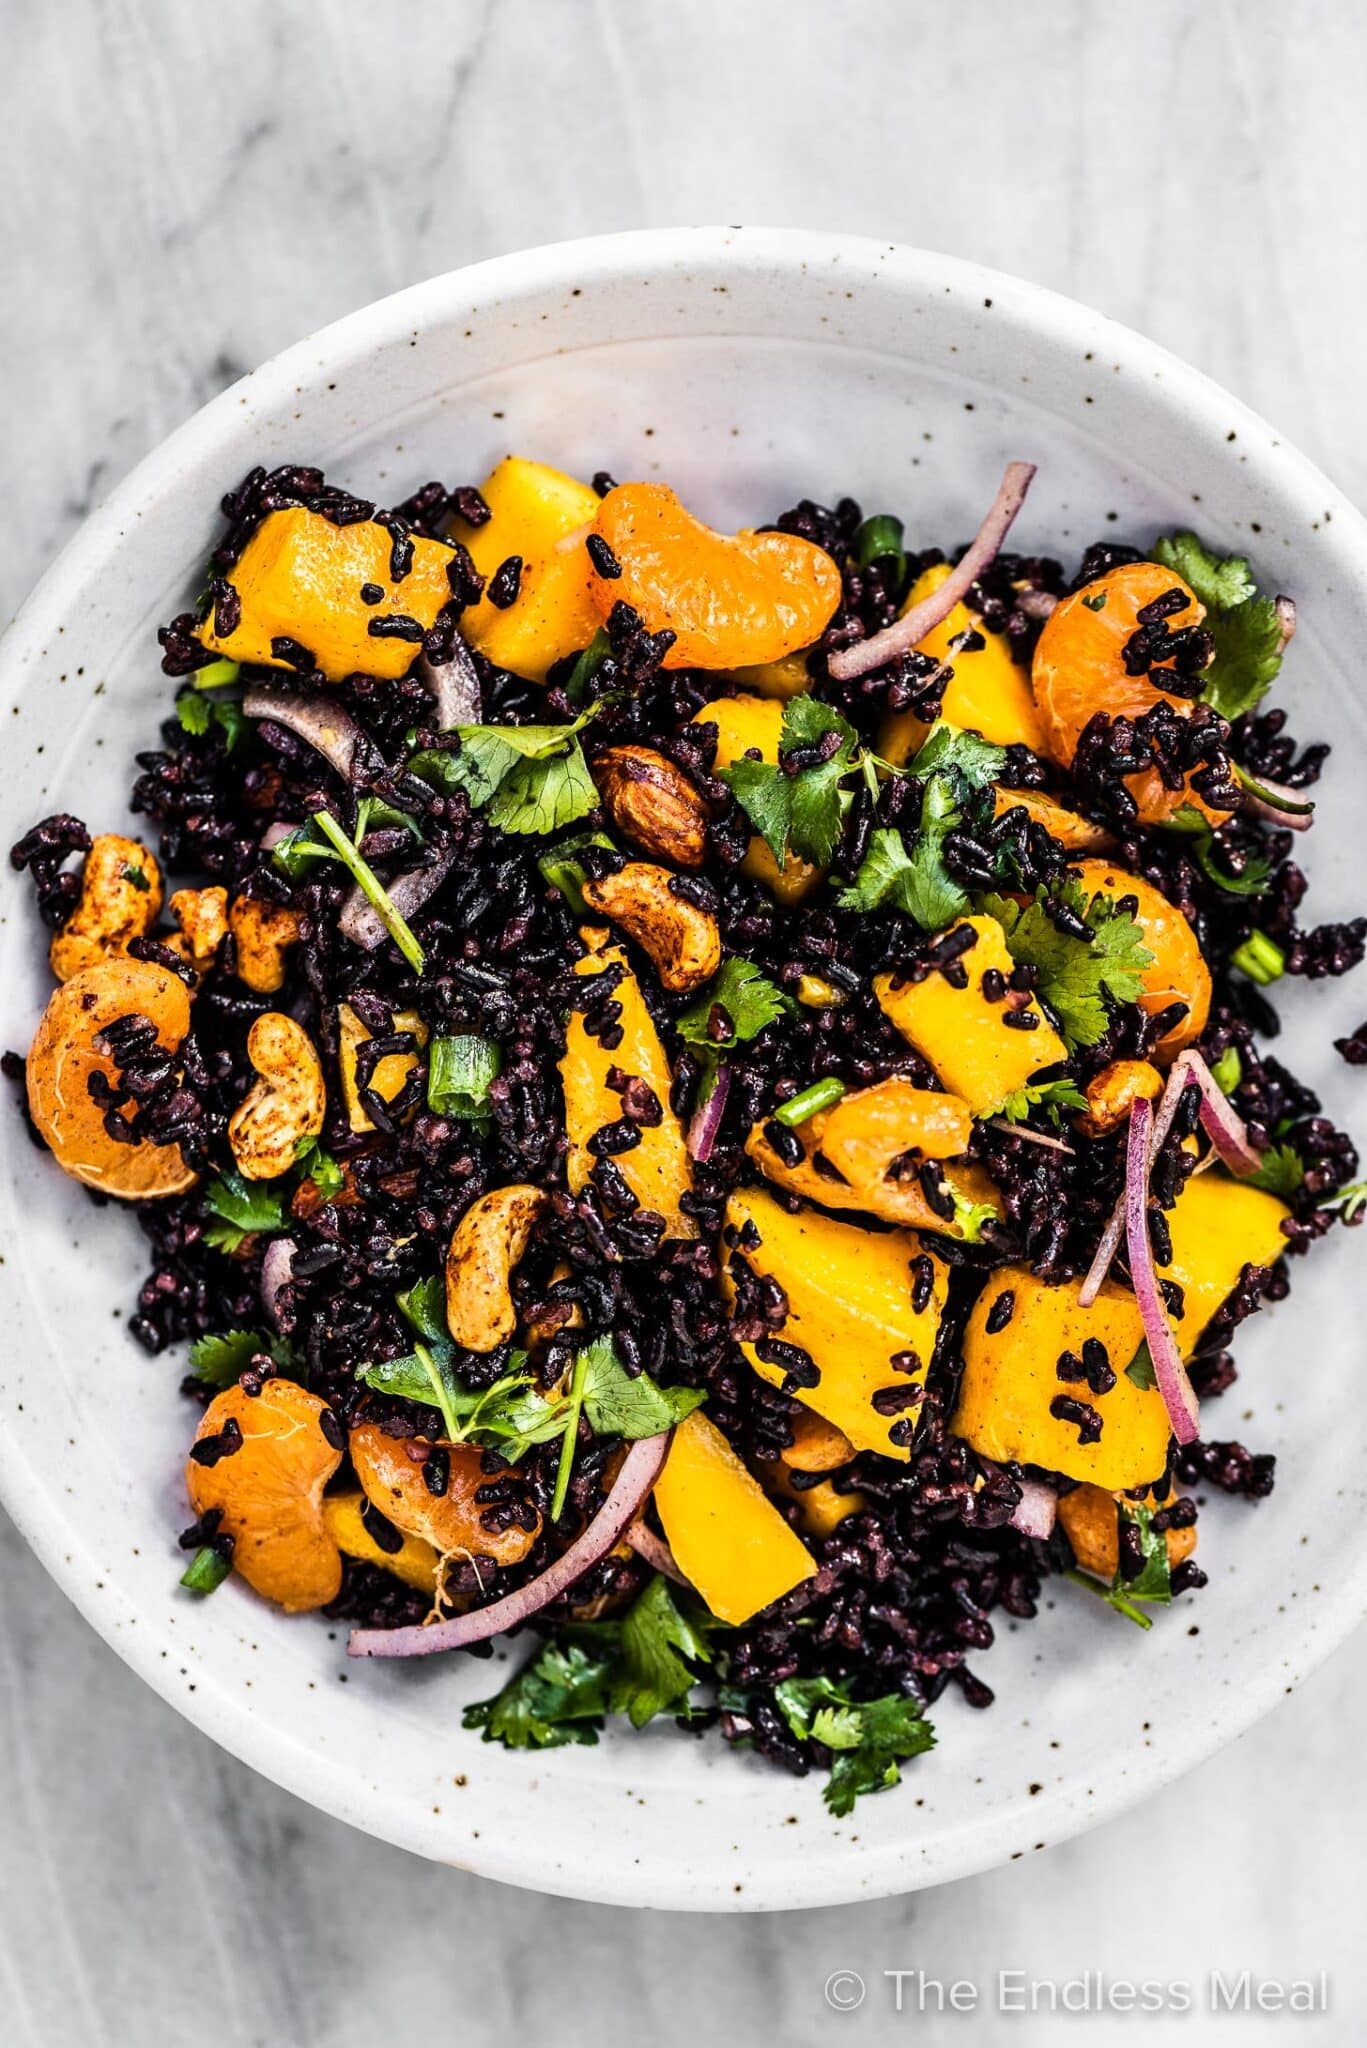 Black rice salad with mangos in a white bowl.